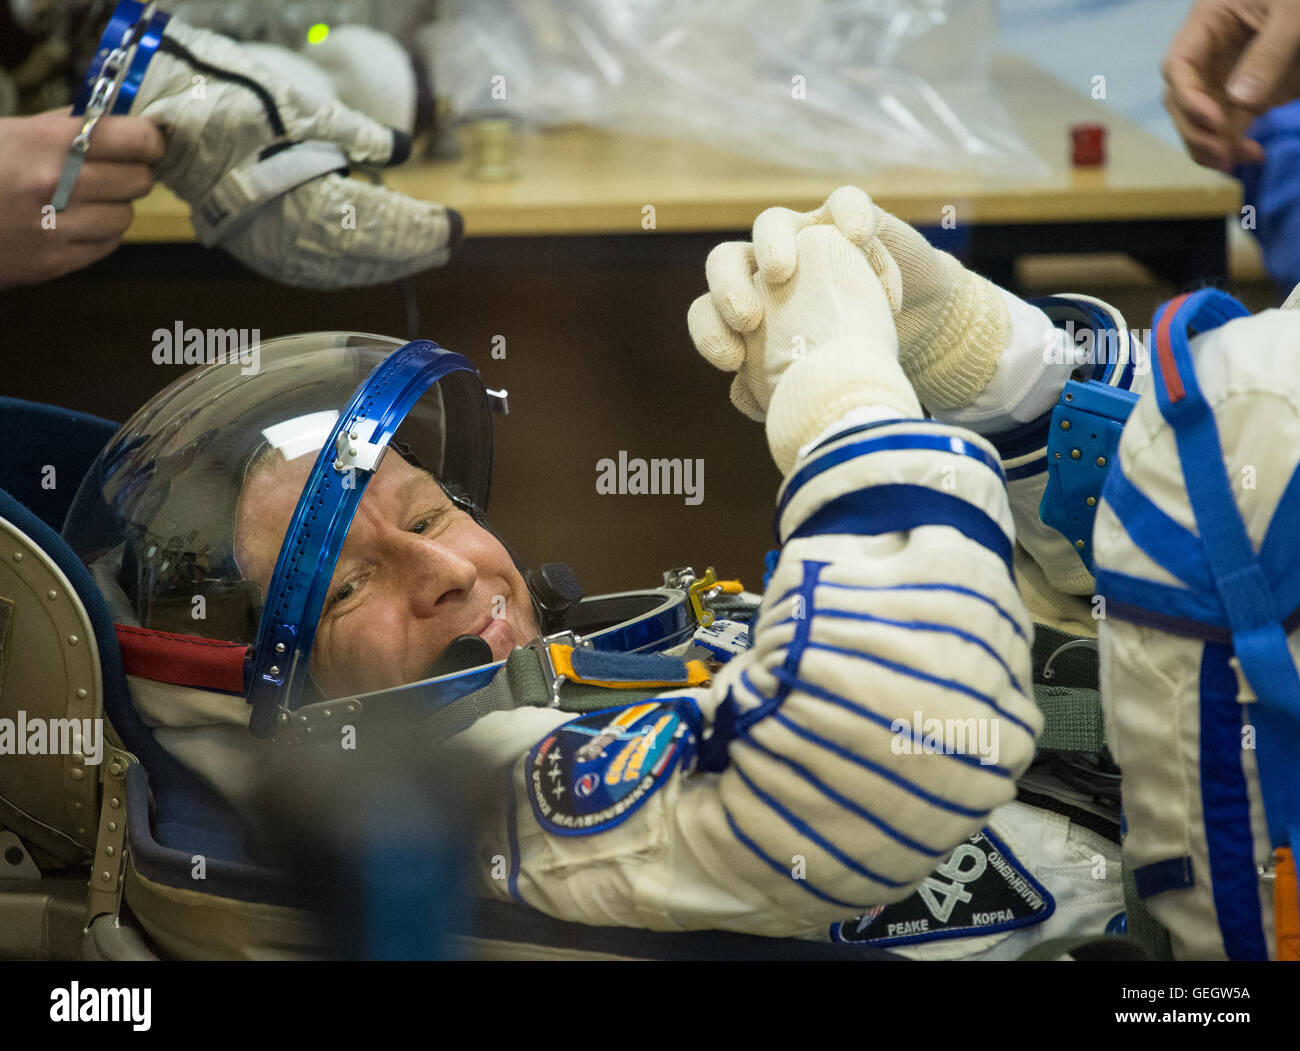 Expedition 46 Preflight  12150046 - Stock Image